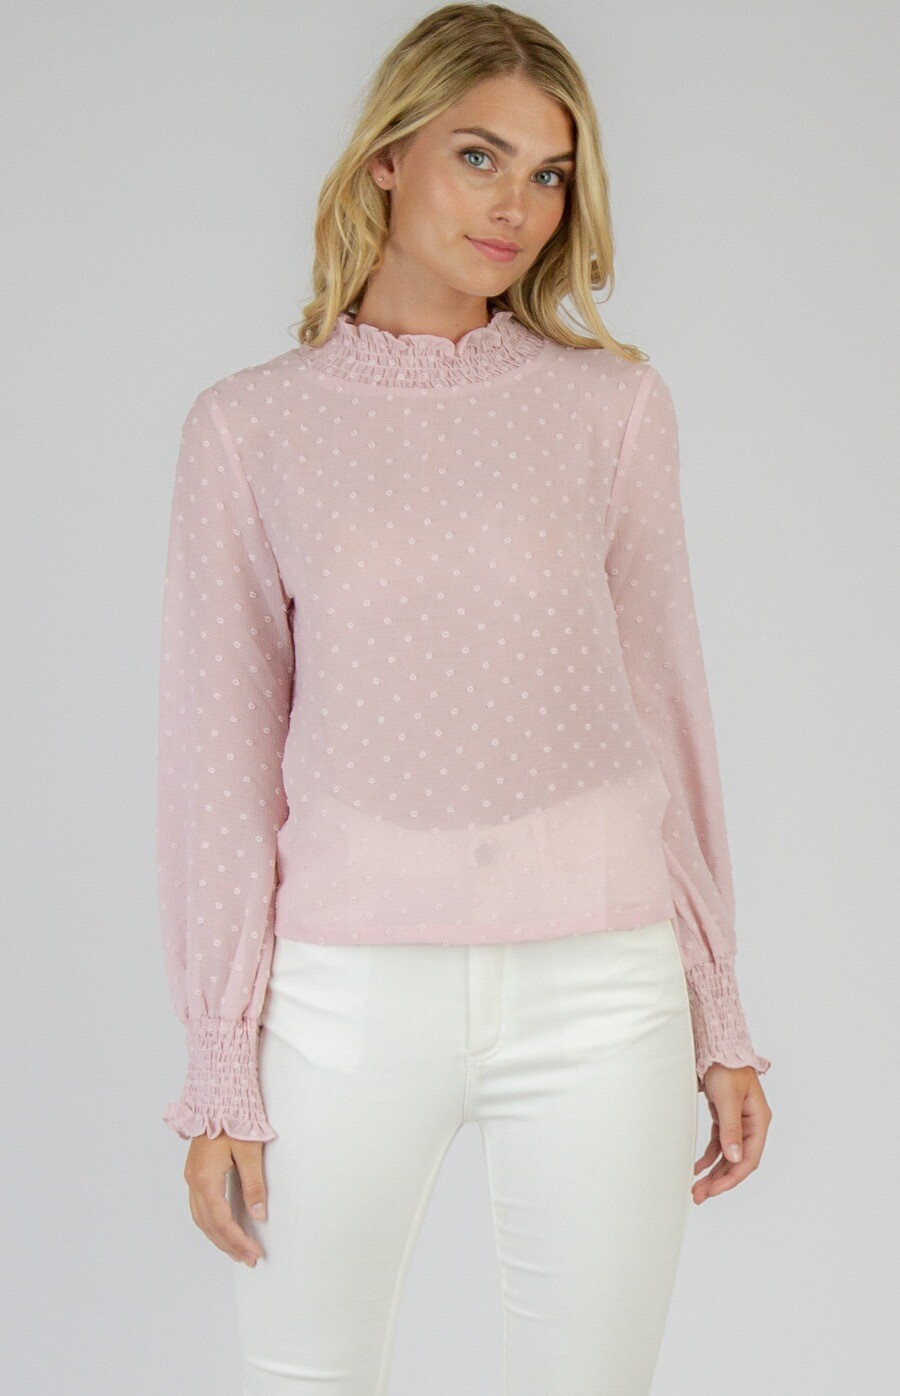 Sheer Textured 3D Top Blush